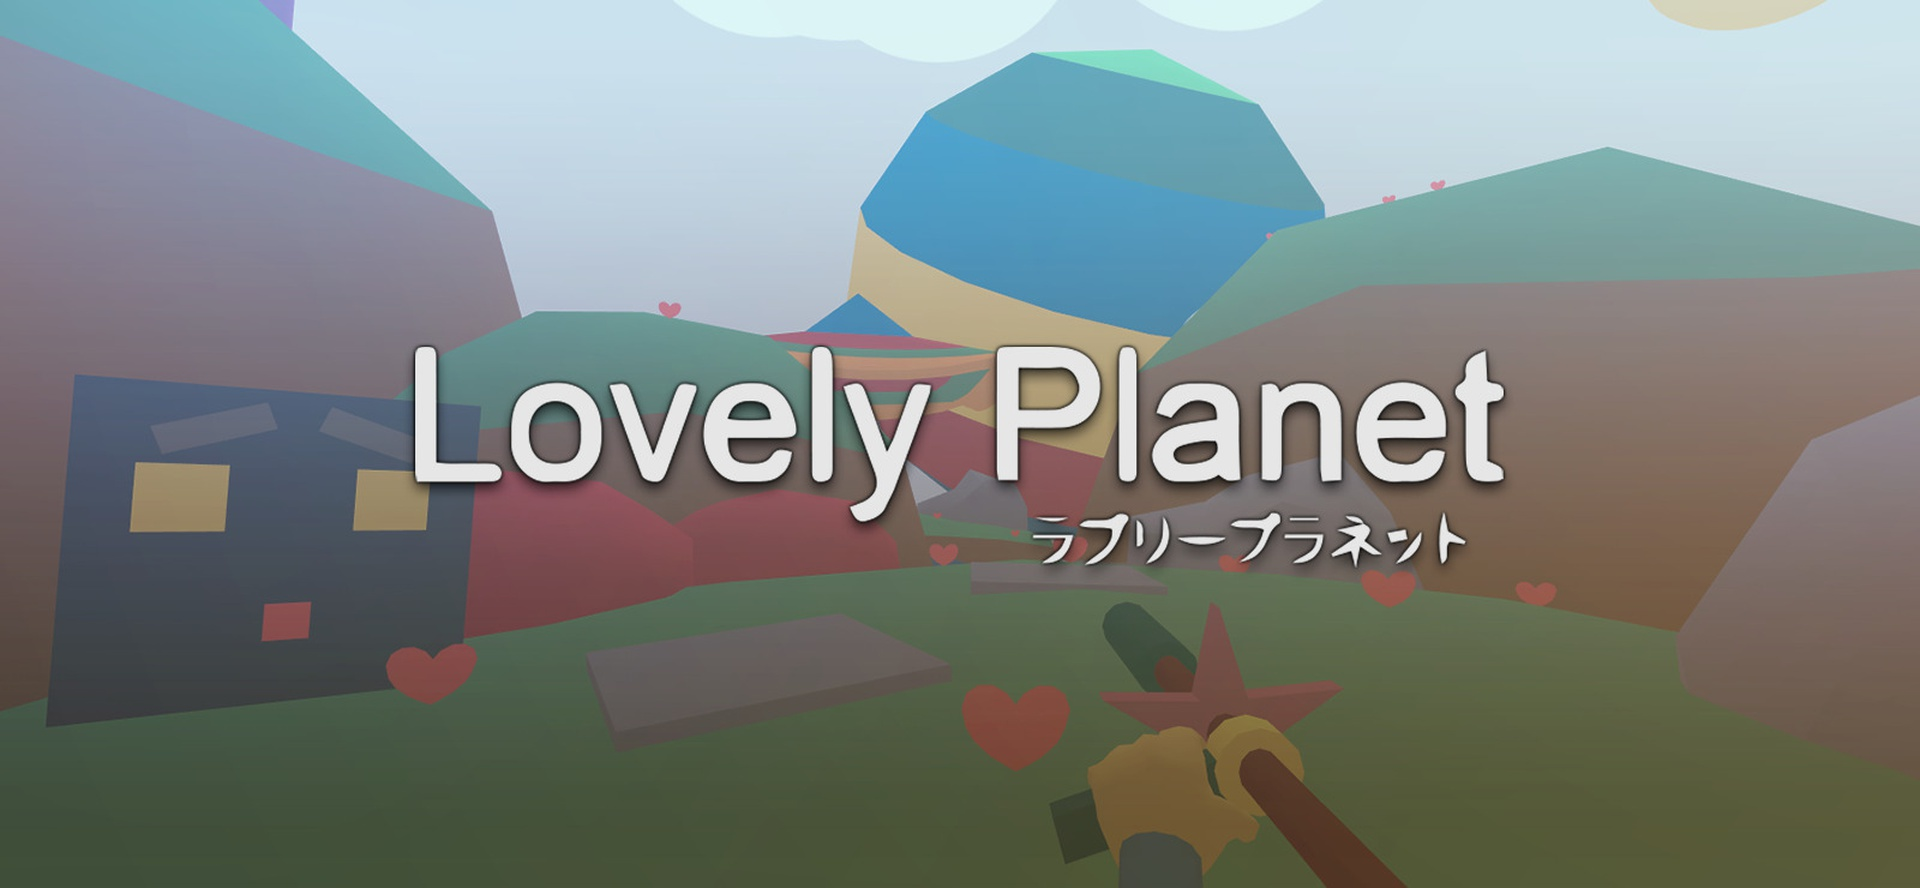 Lovely Planet Video